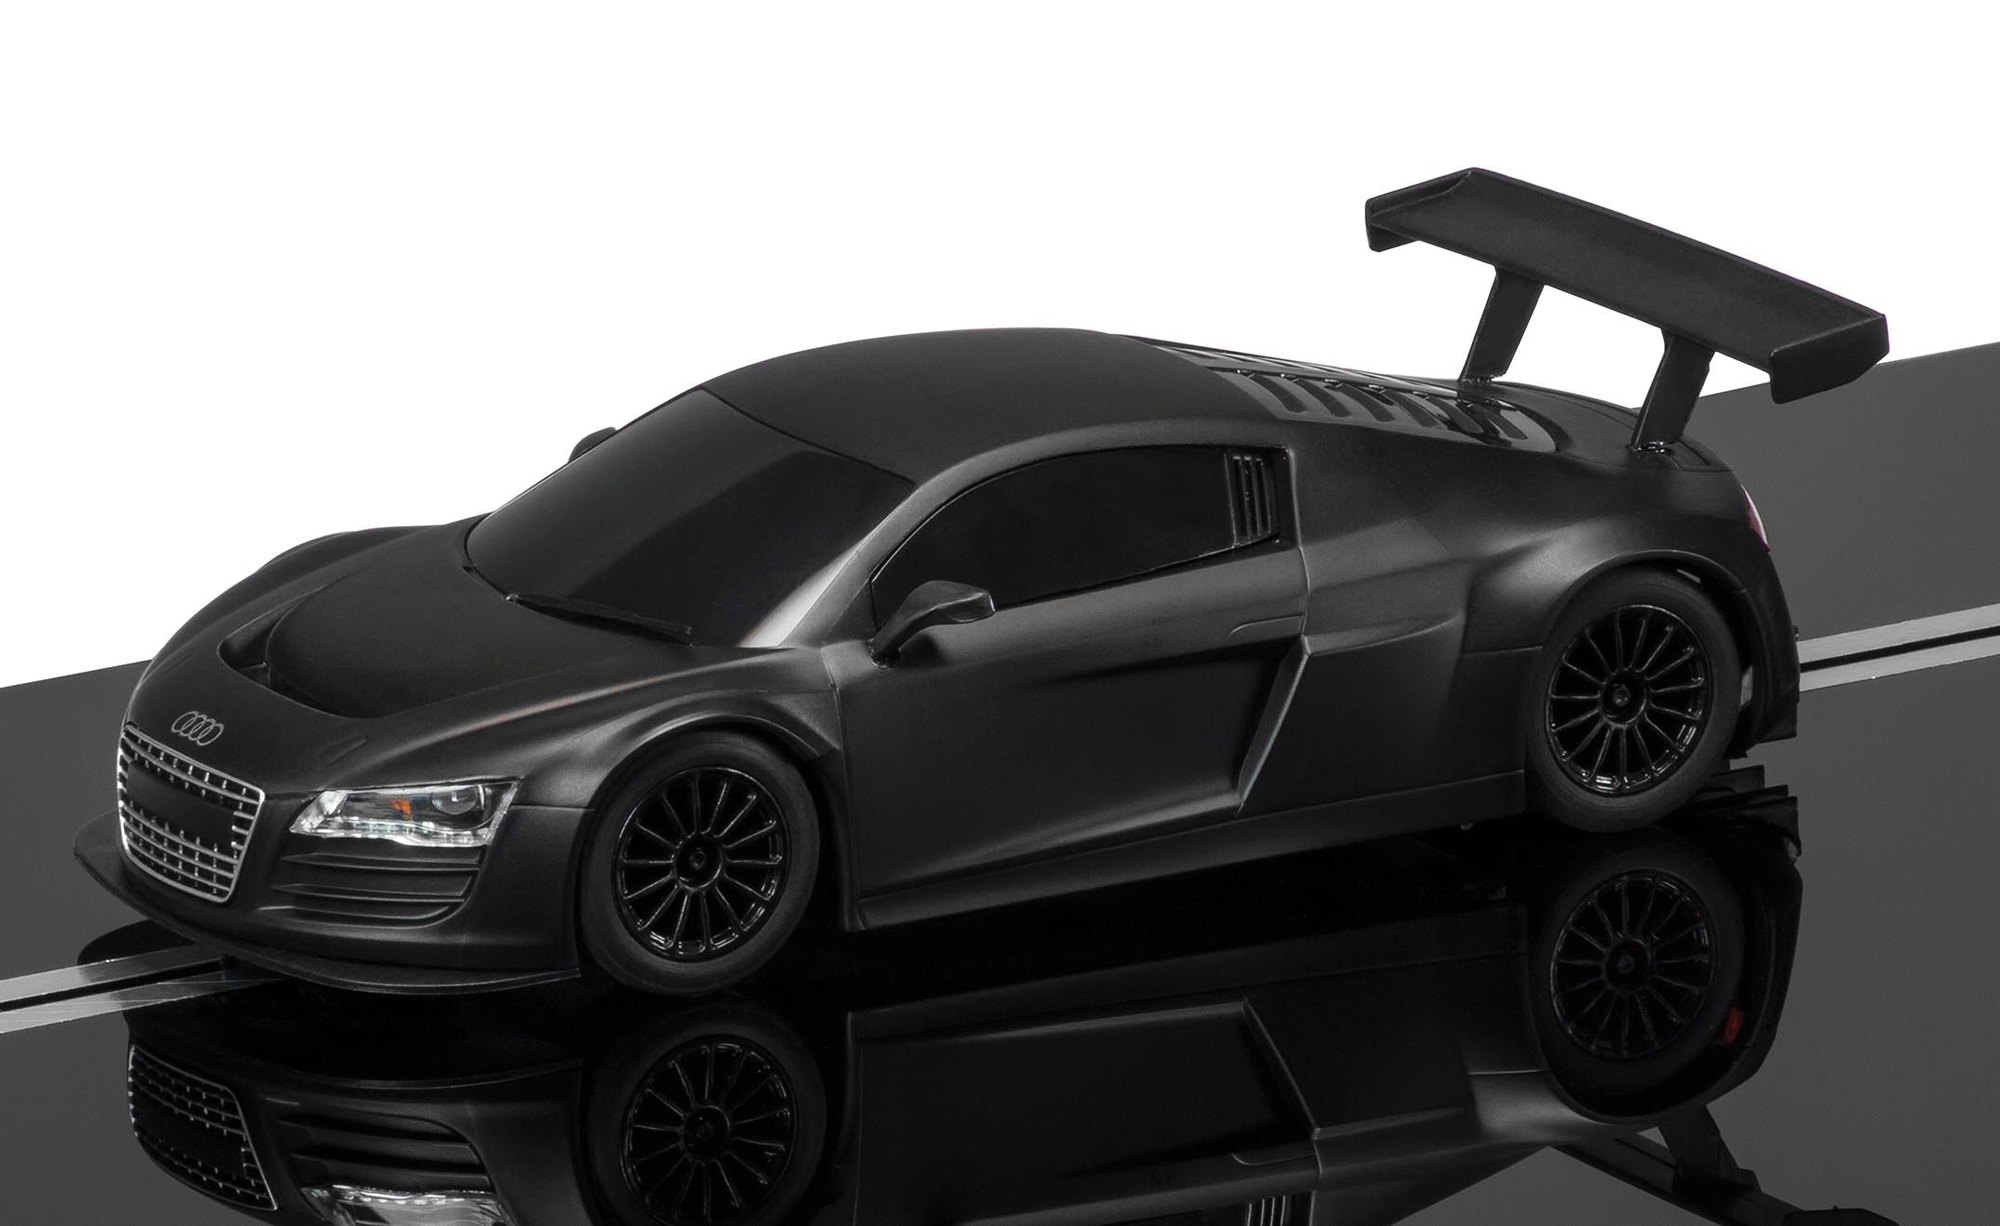 scalextric audi r8 lms srs mattschwarz 3663. Black Bedroom Furniture Sets. Home Design Ideas